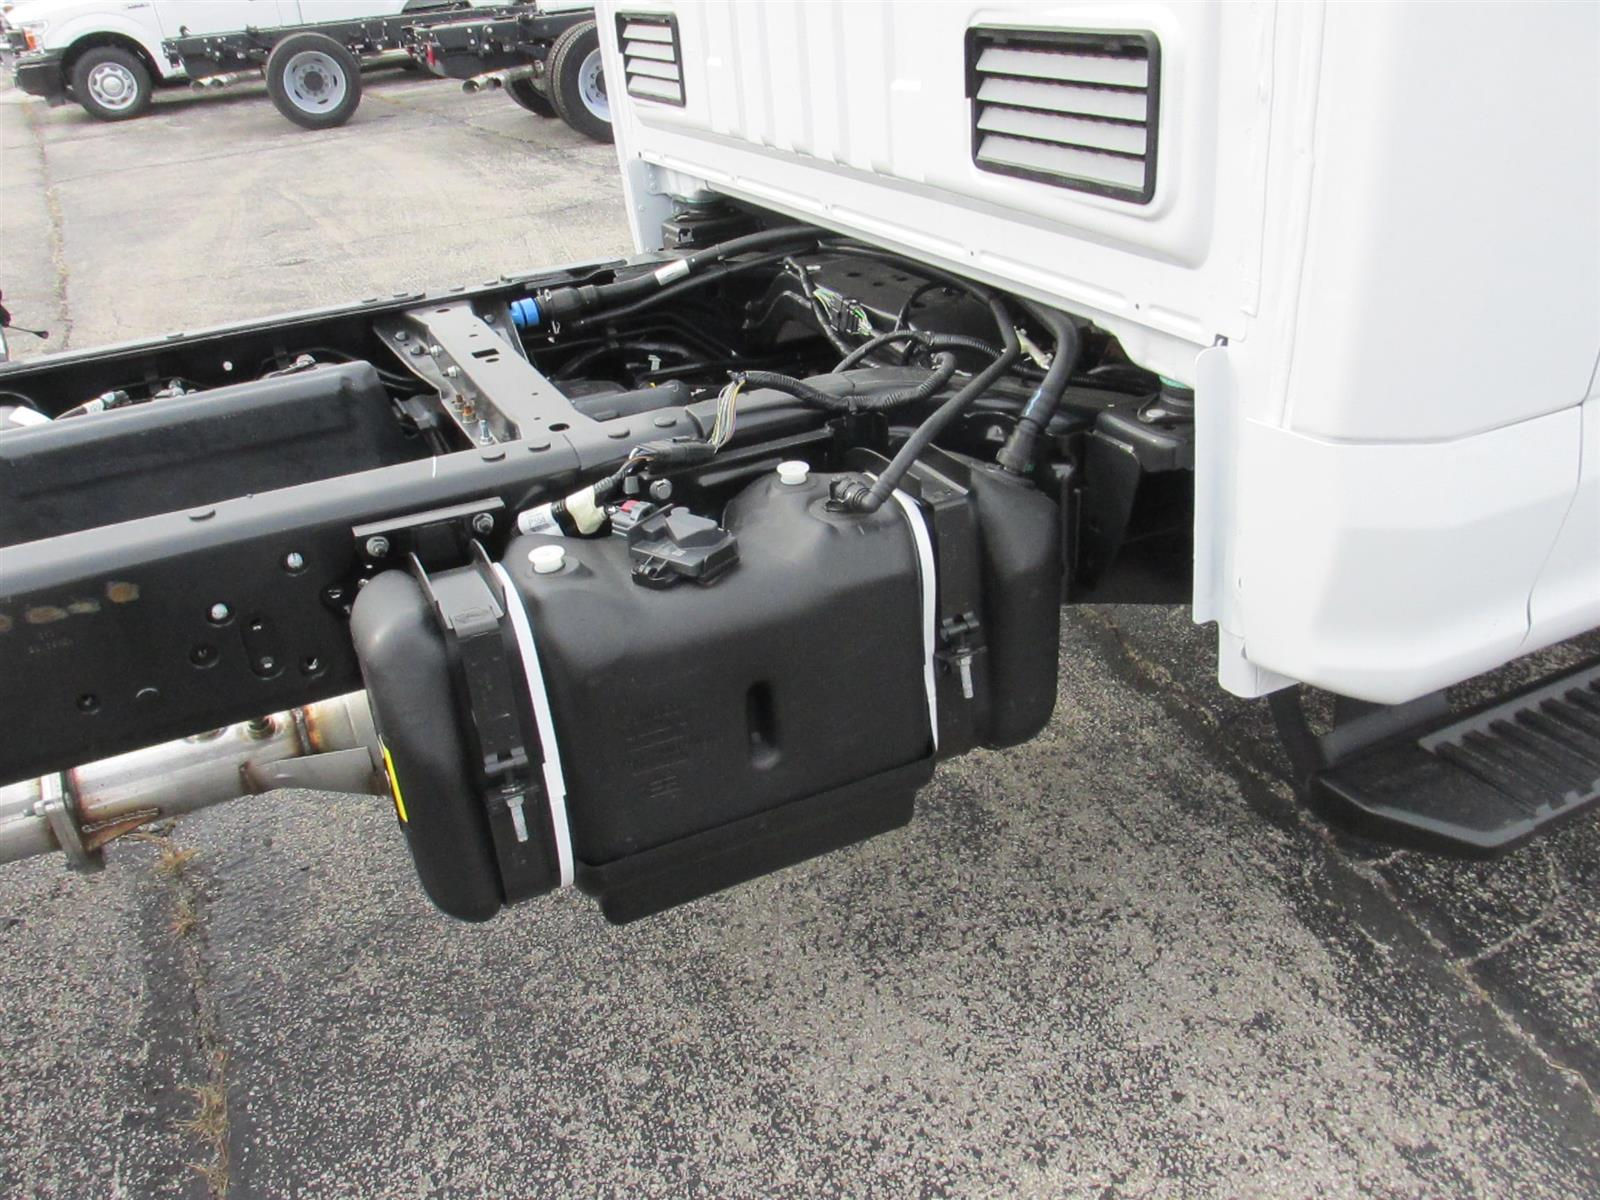 2019 Ford F-550 Regular Cab DRW 4x4, Cab Chassis #4054 - photo 1